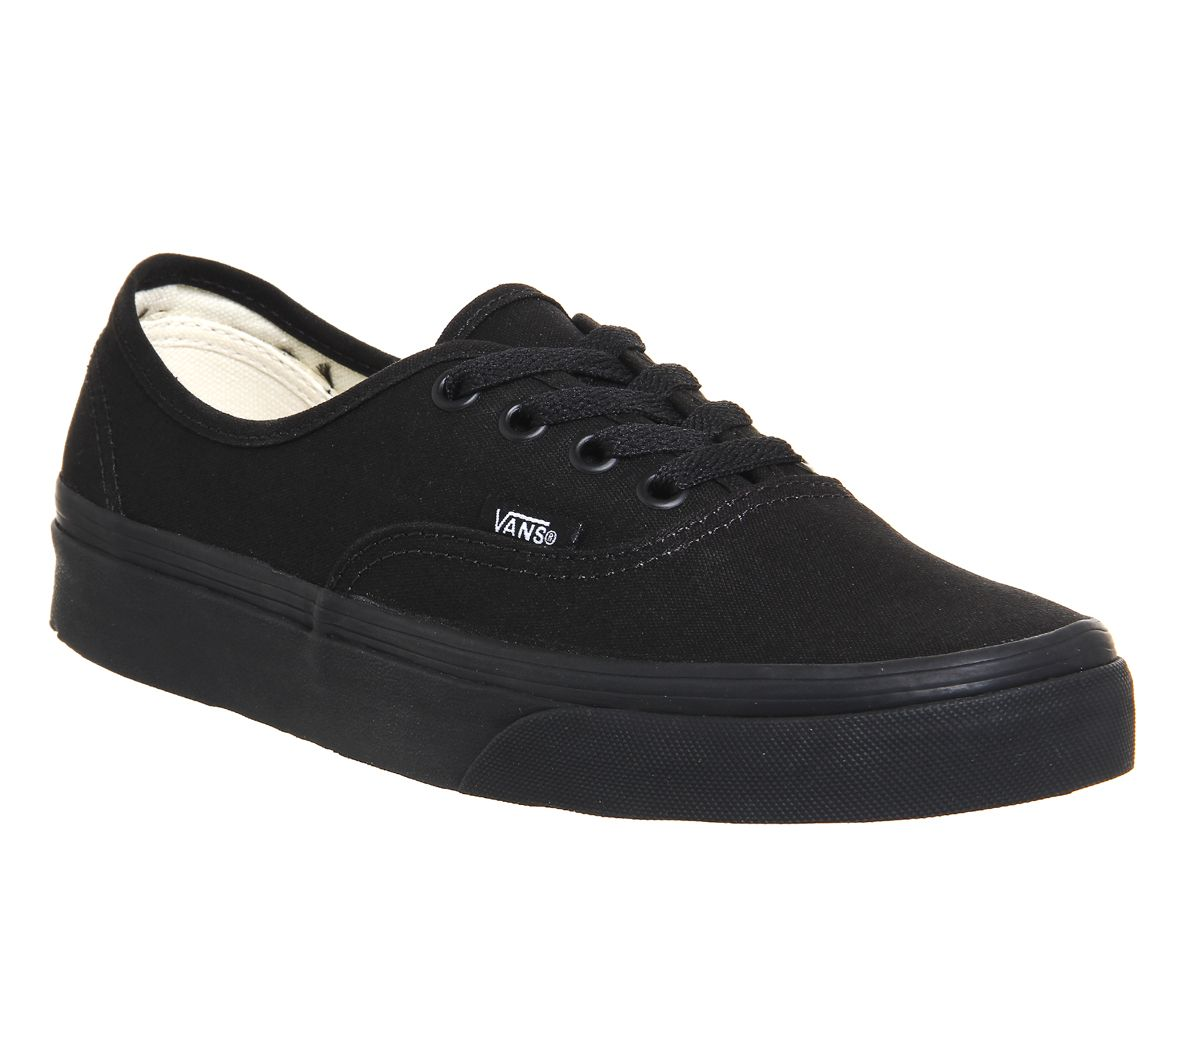 011ee2442a Vans Authentic Black Mono - Unisex Sports